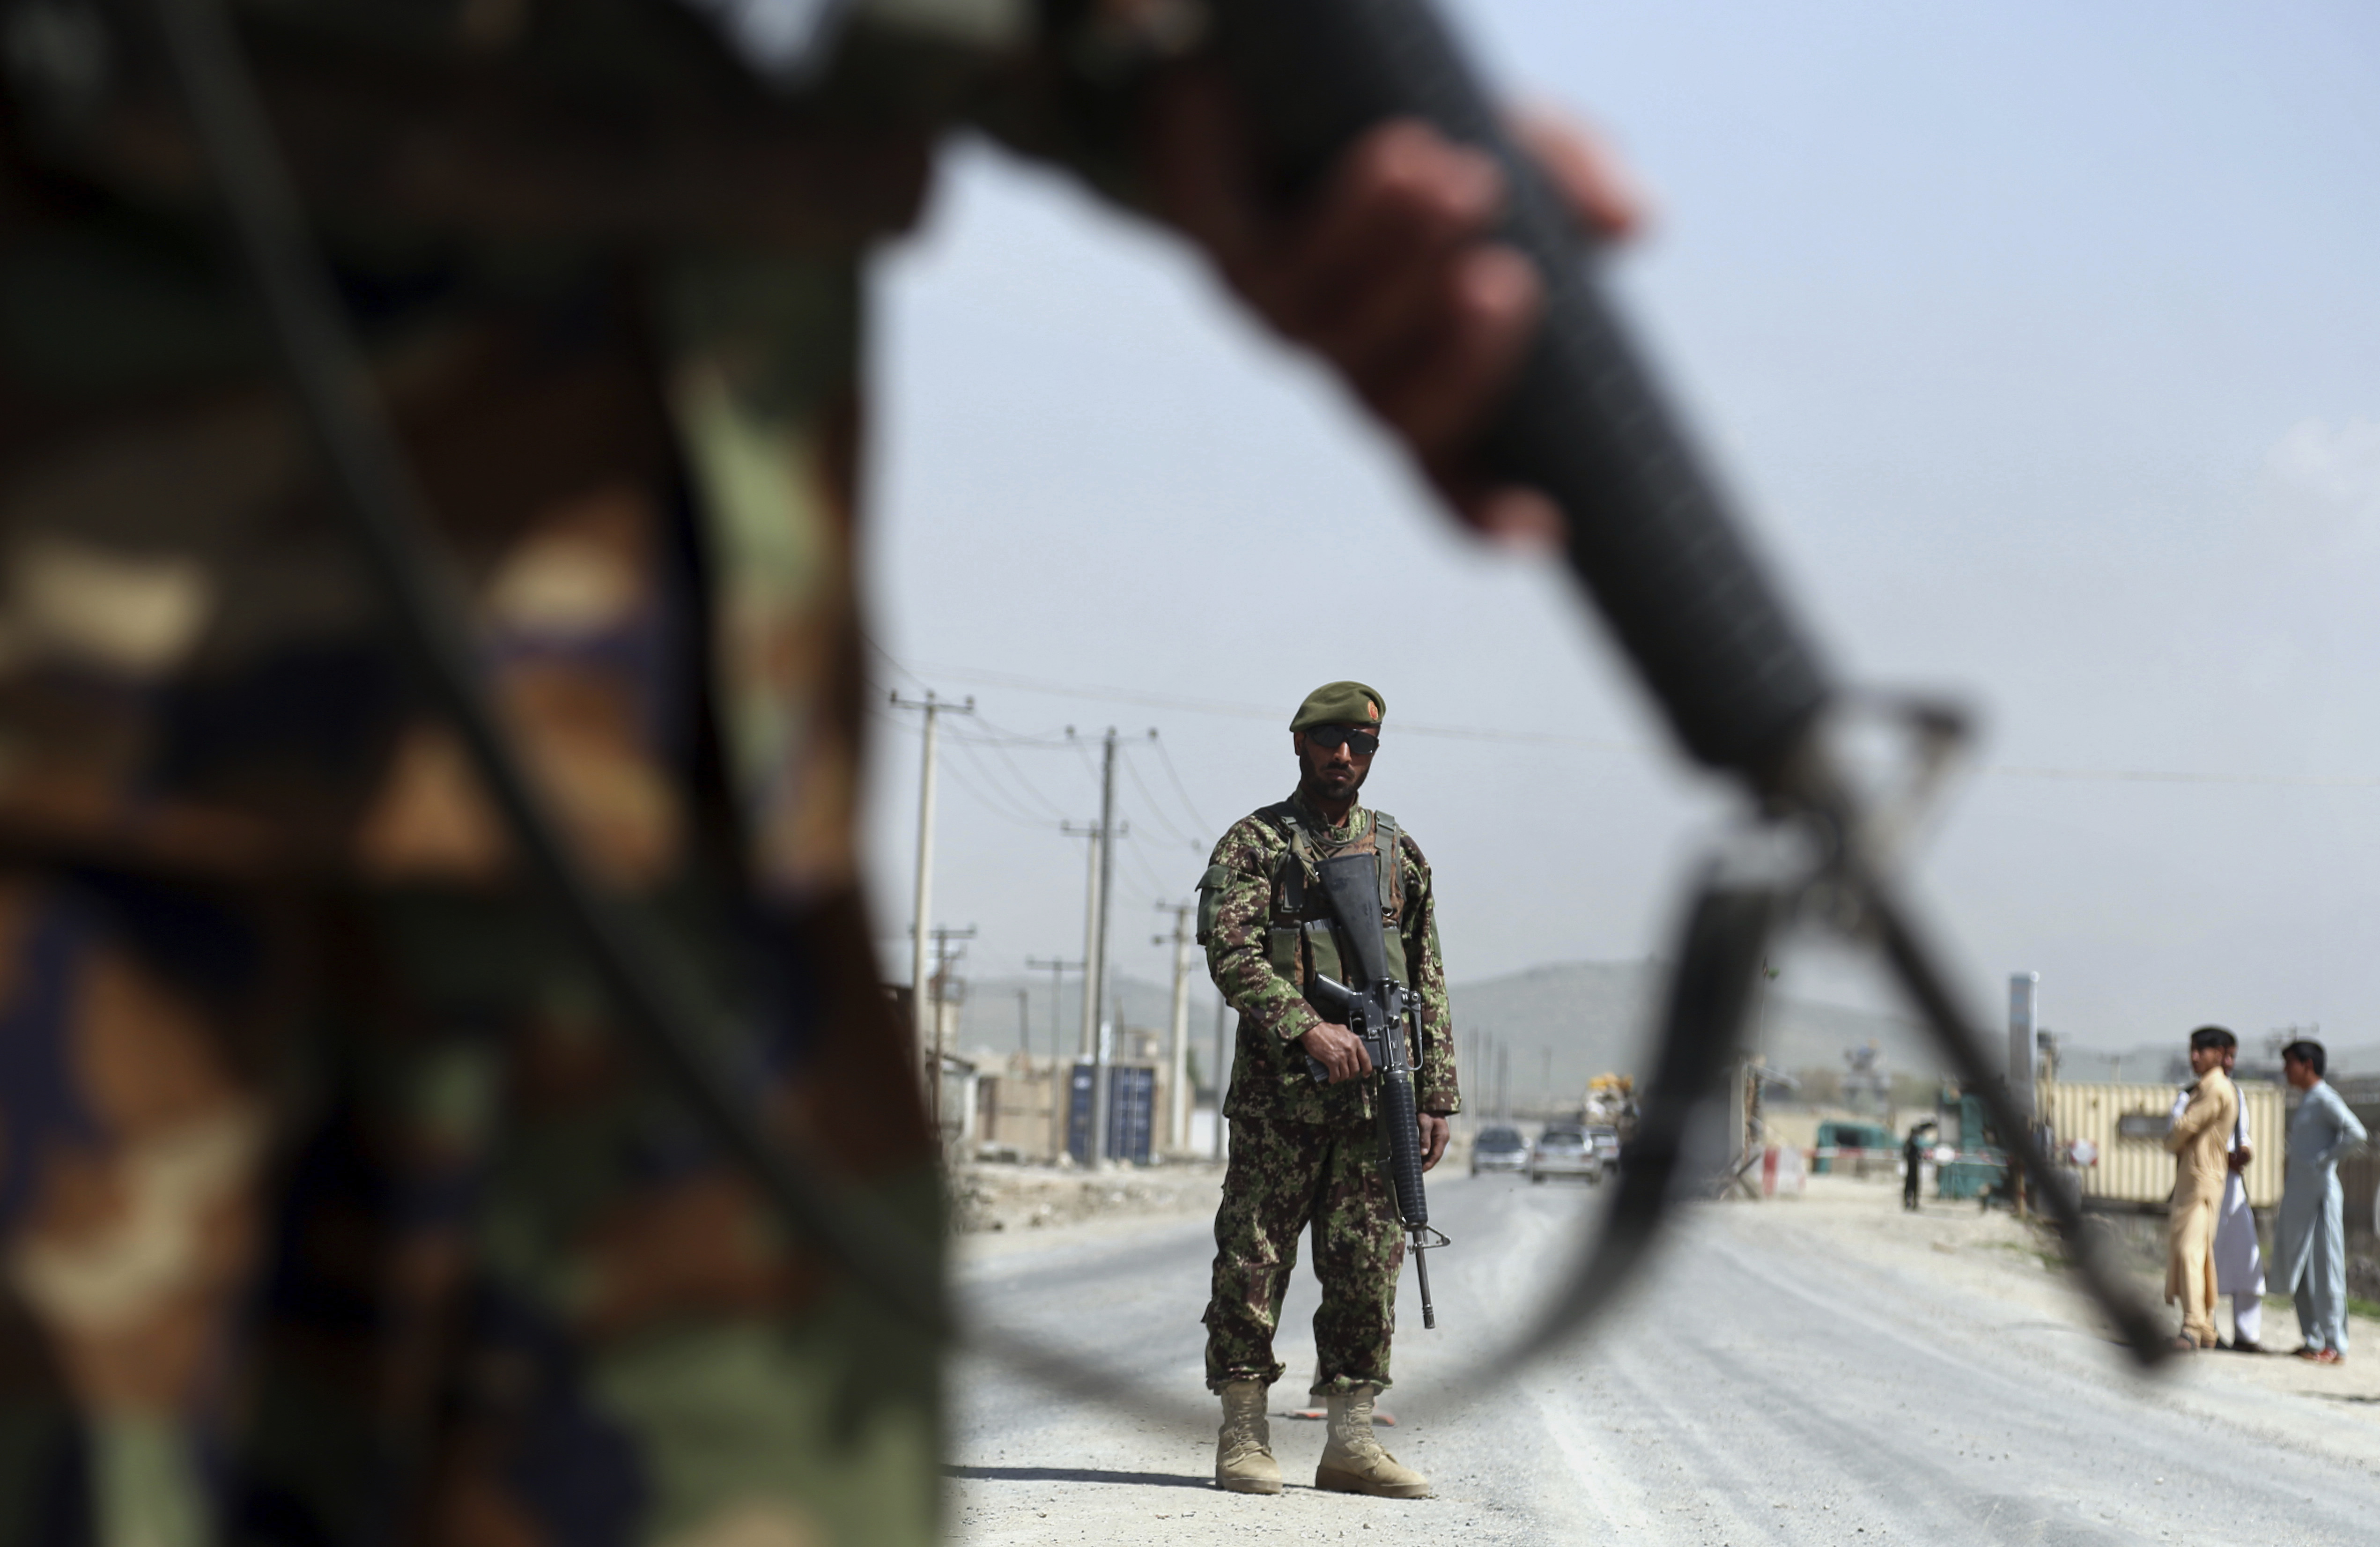 US Stops Collecting Data Showing Afghan Government Losing